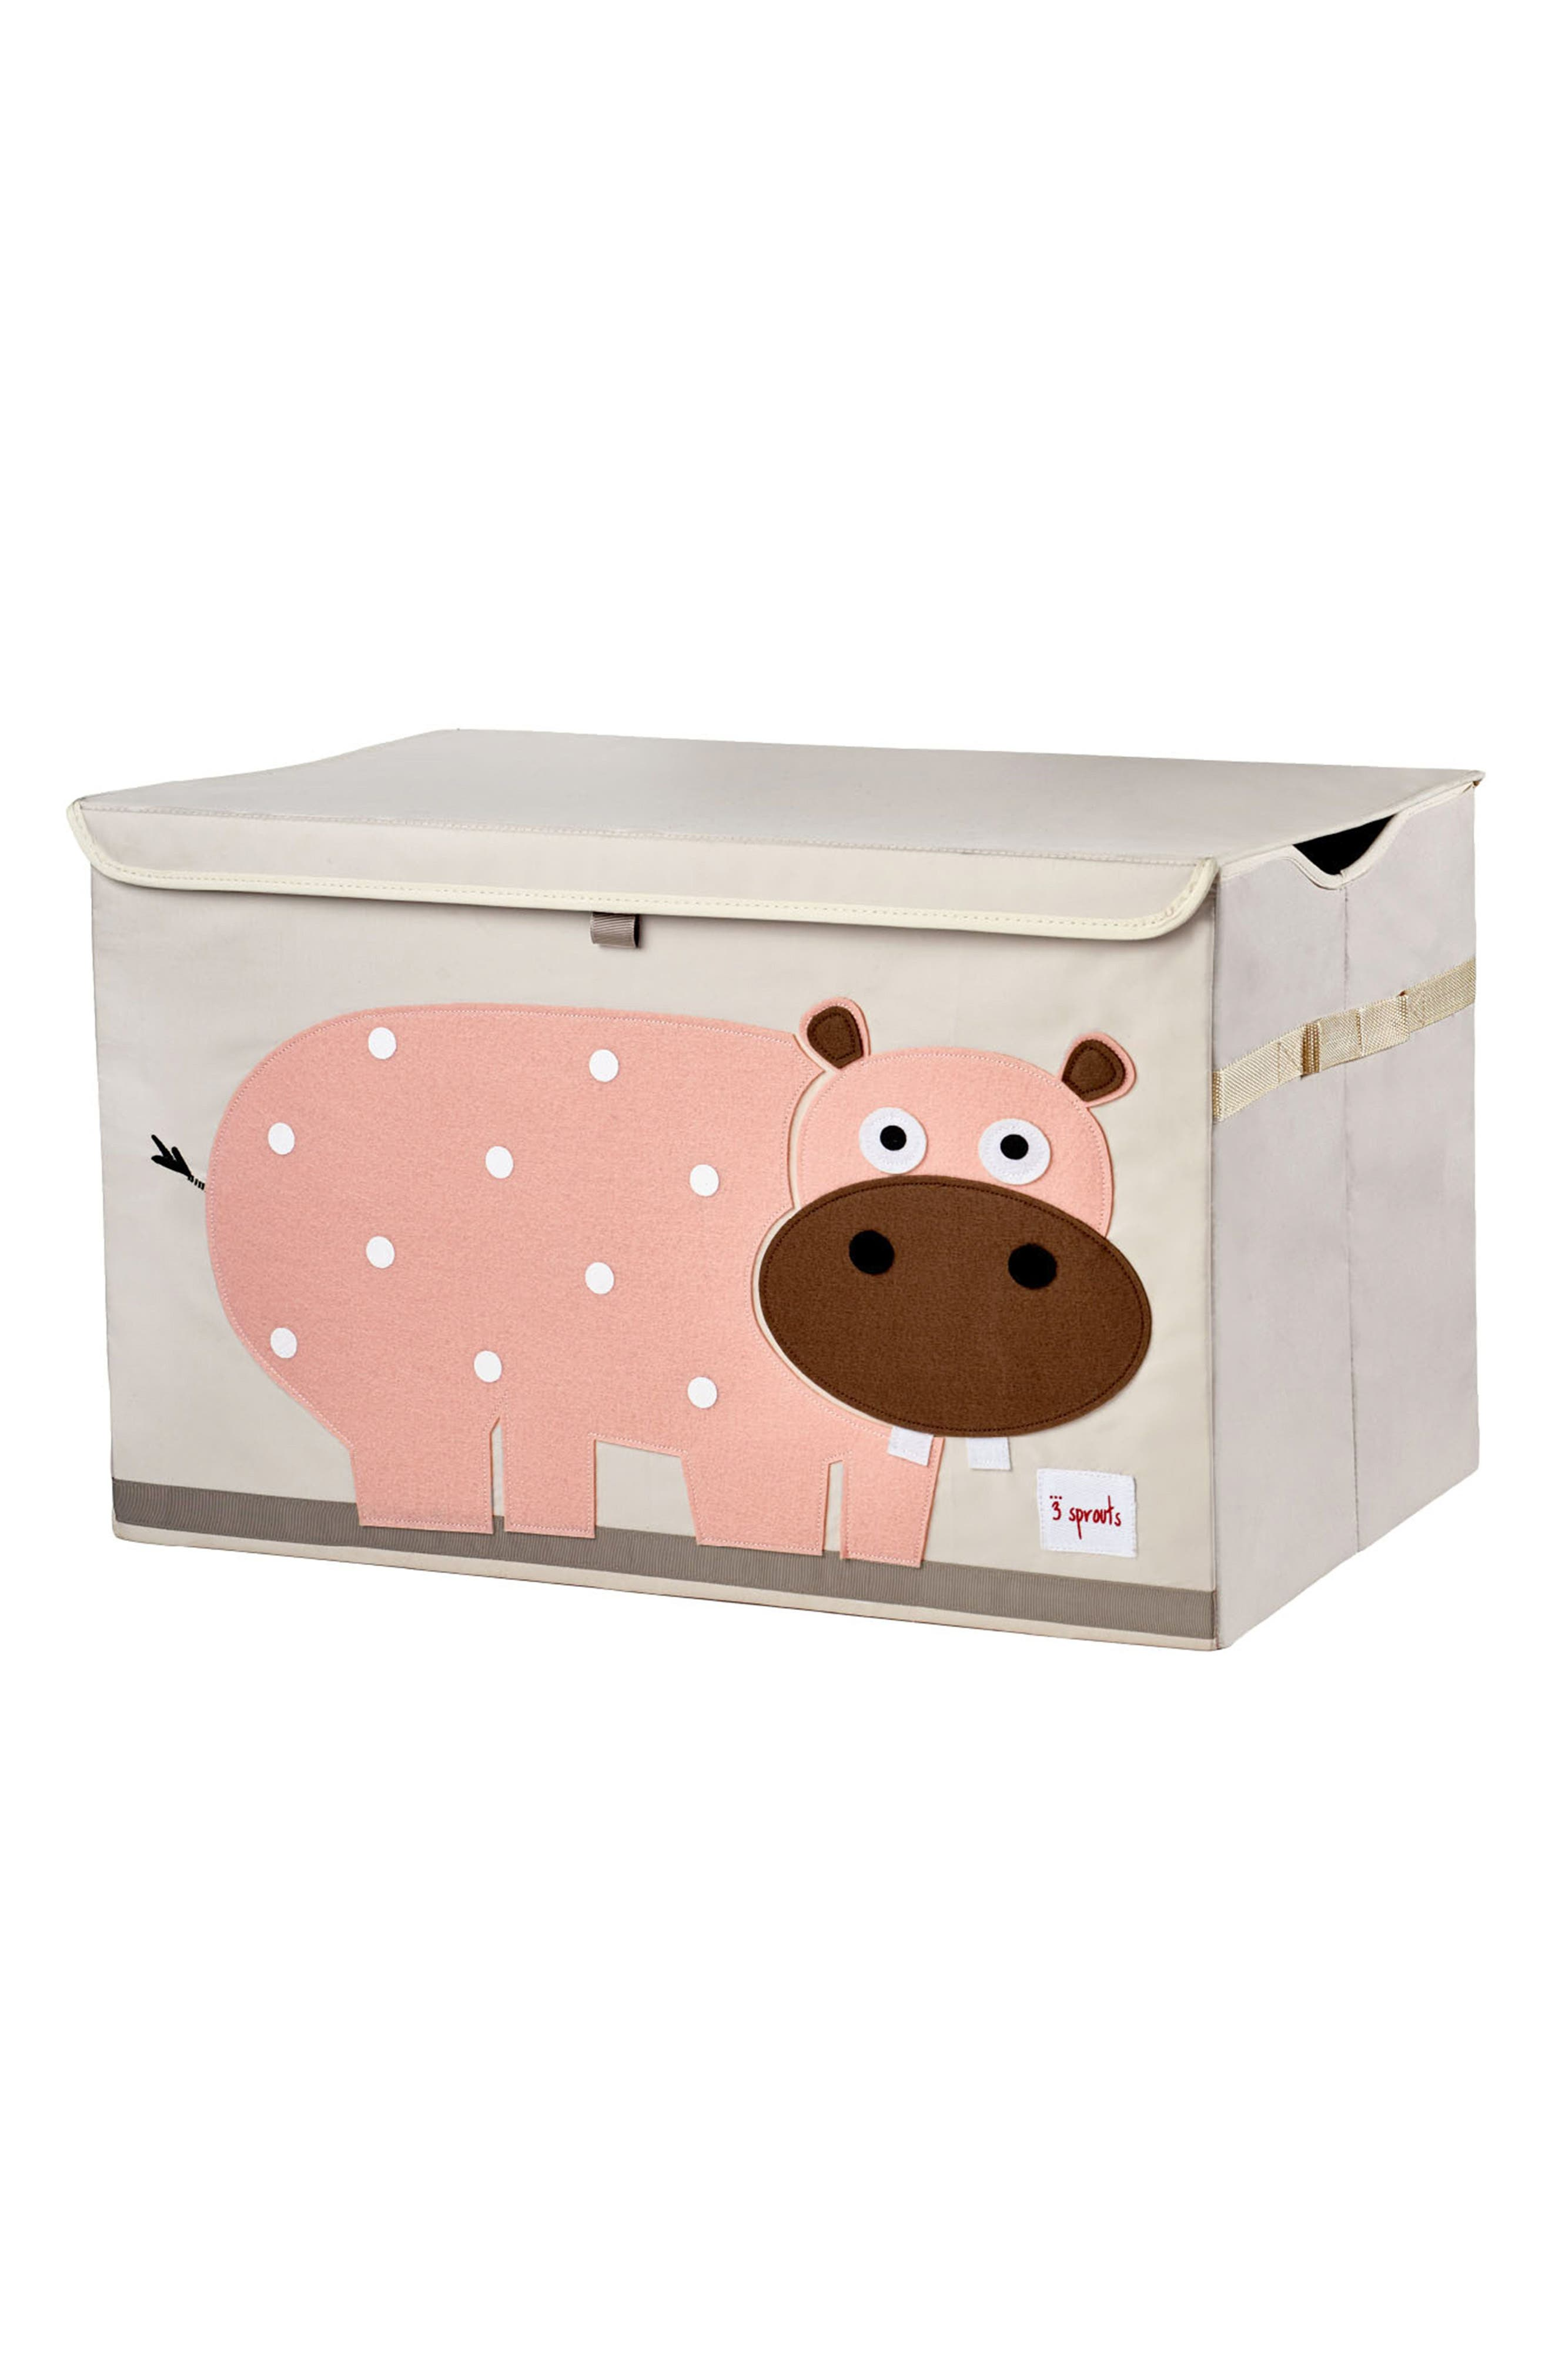 Main Image - 3 Sprouts Hippo Toy Chest